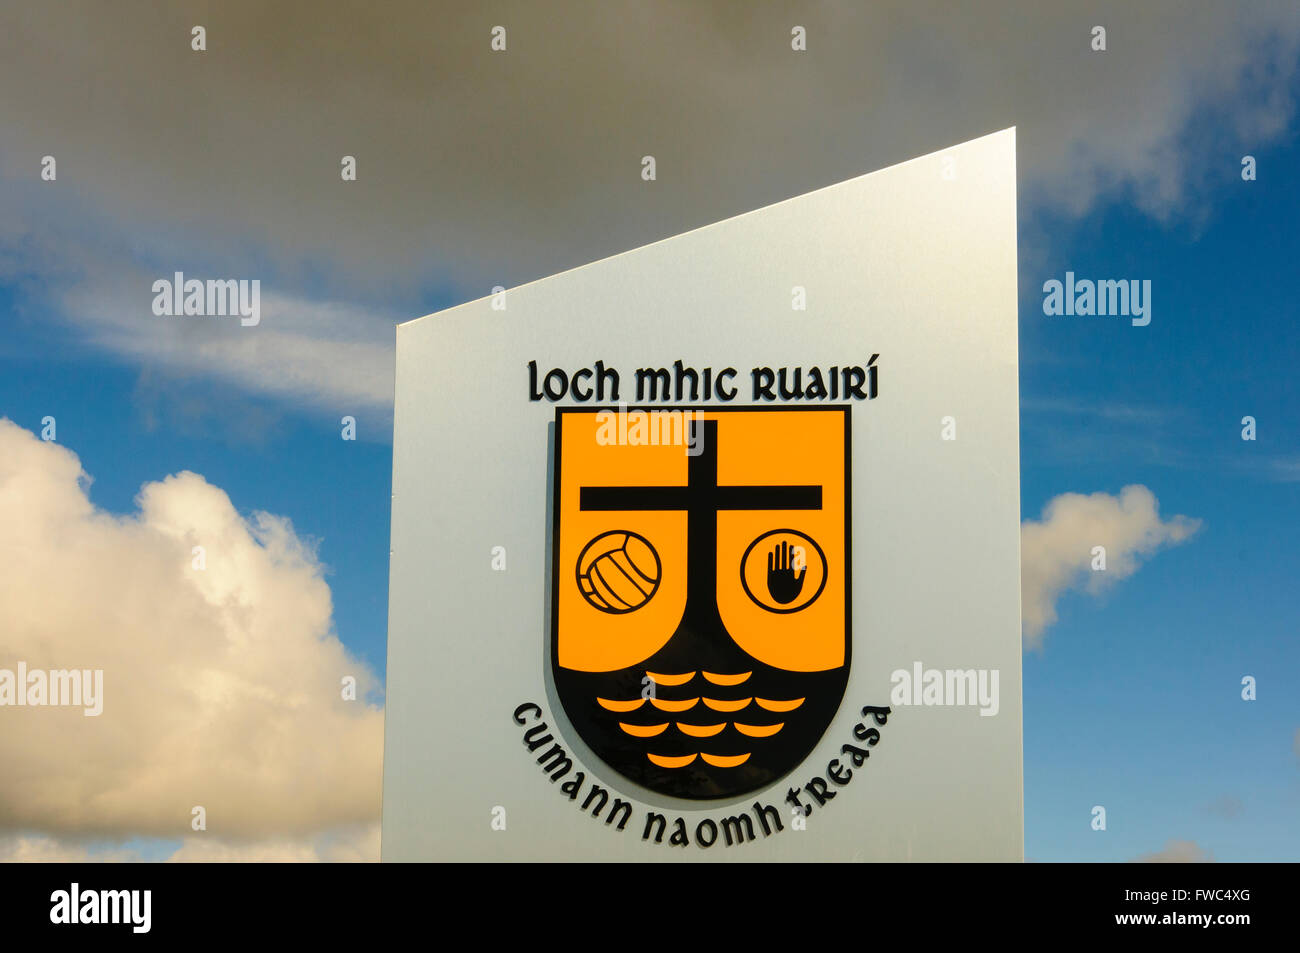 Loch mhic Raurí GAA grounds, Loughmacrory, County Tyrone, Northern Ireland. Stock Photo